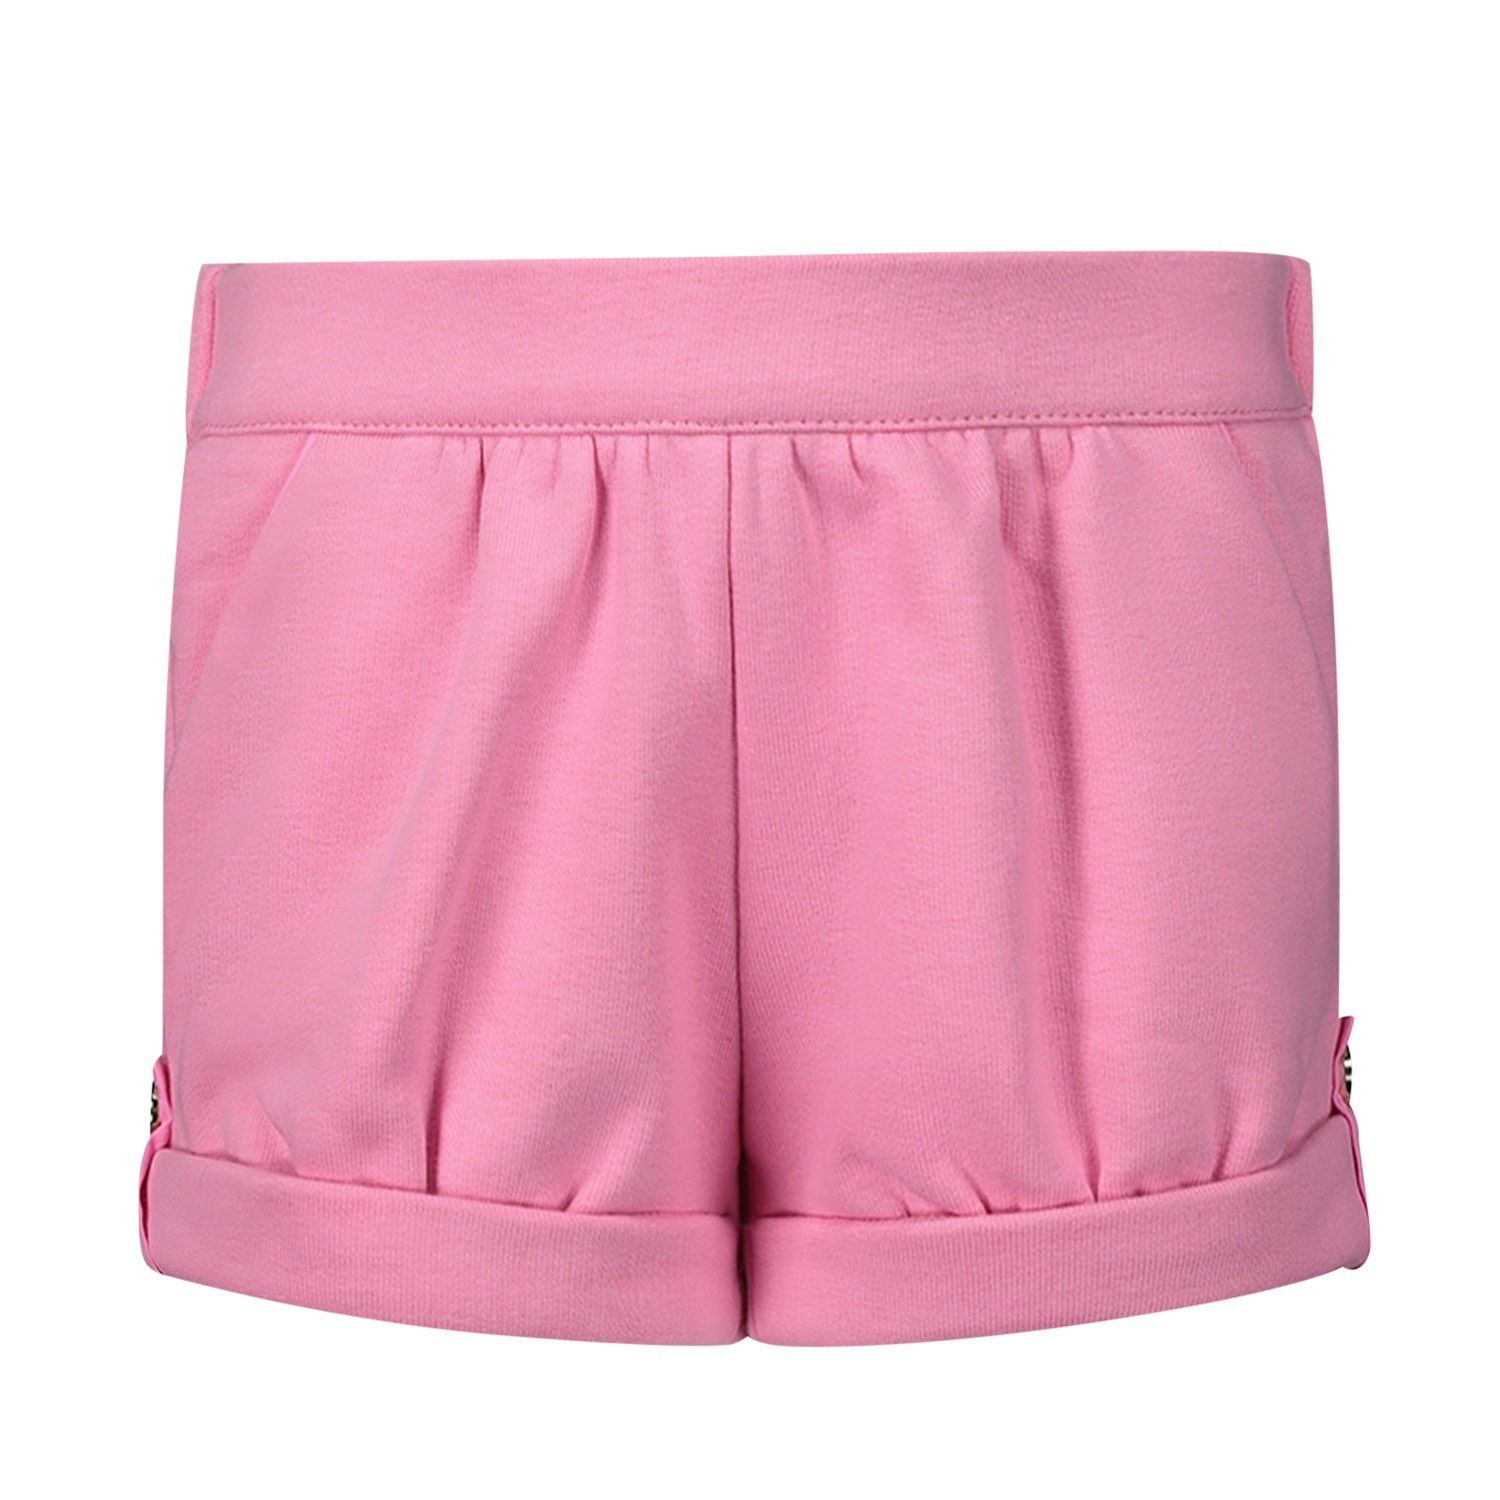 Picture of Chloé C04153 baby shorts fuchsia